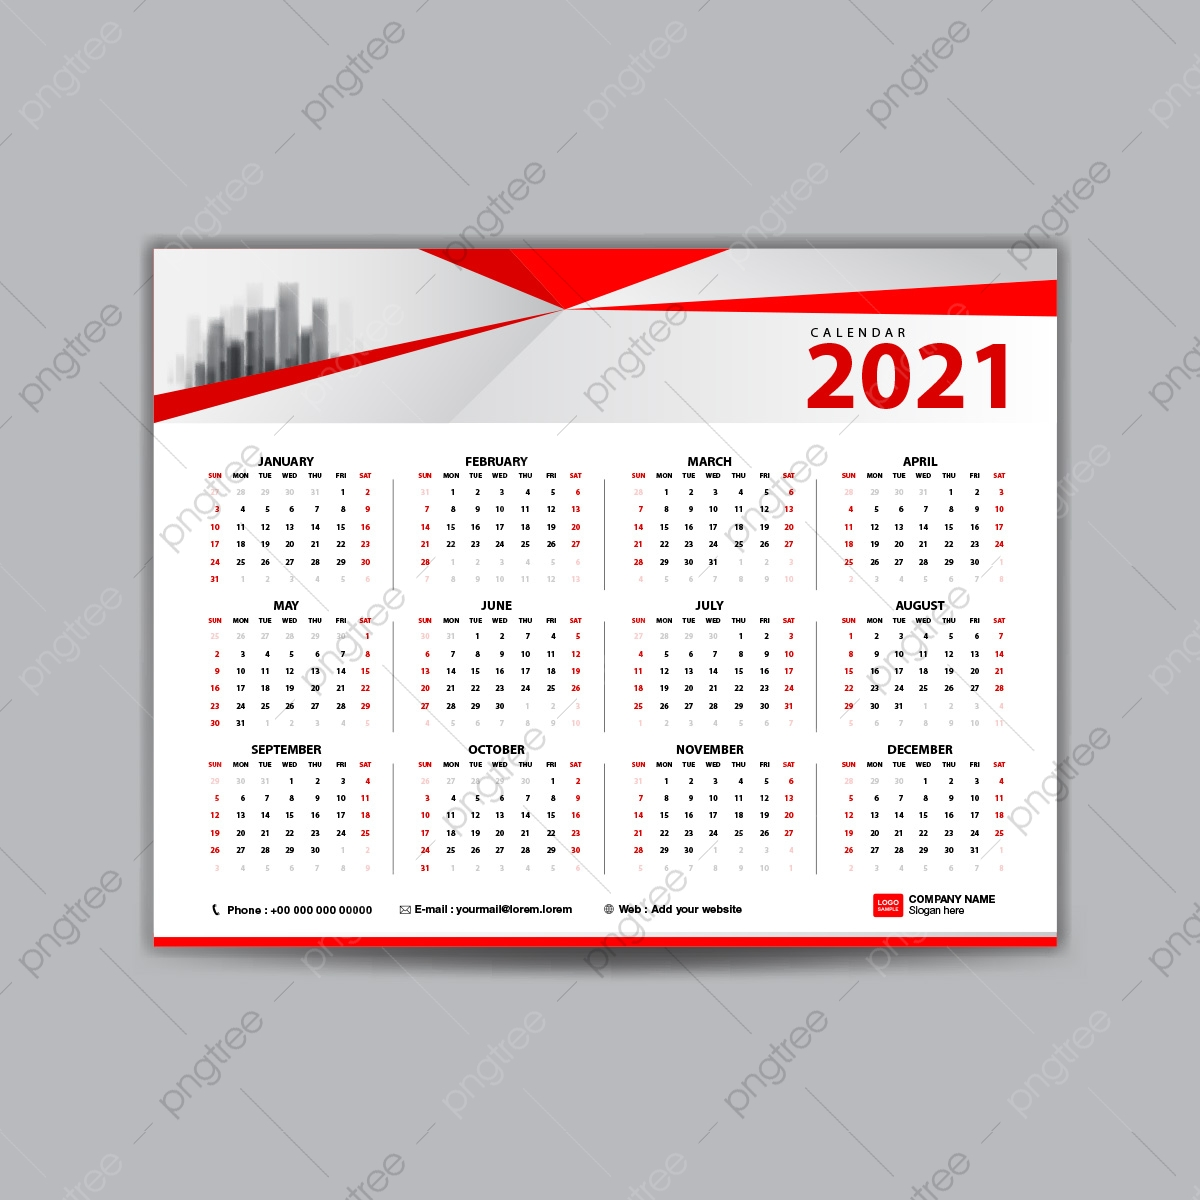 Calendar 2021 Design Template Template for Free Download on Pngtree